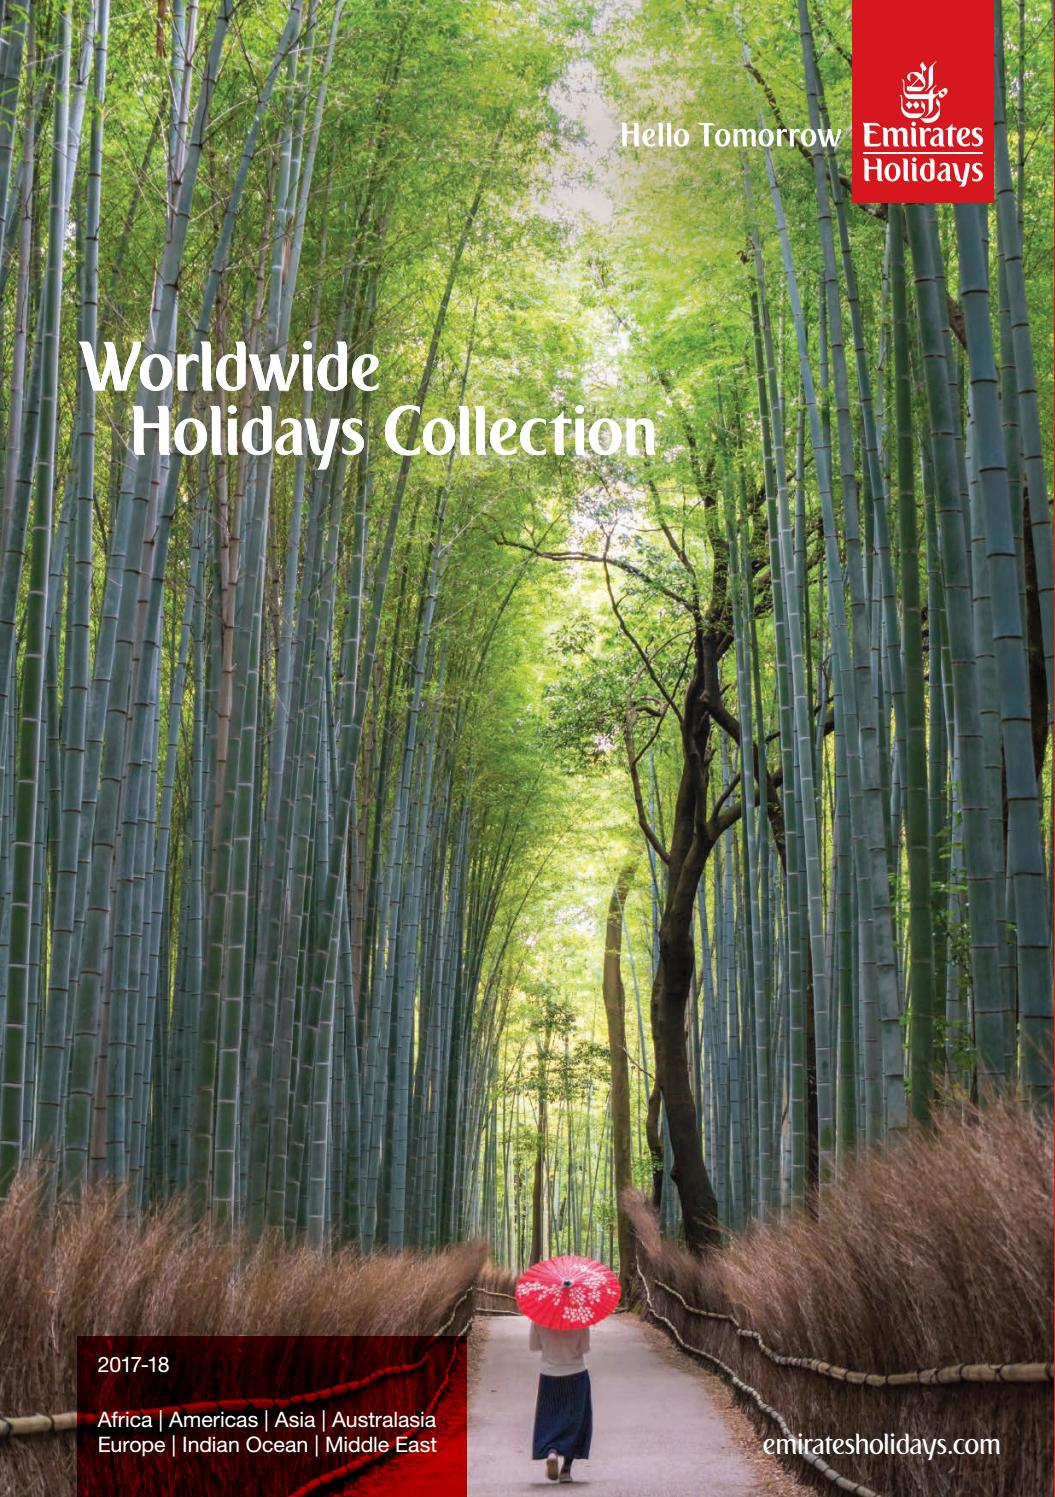 Worldwide Holidays Collection by Emirates Group - issuu e84fd7fa0bb88